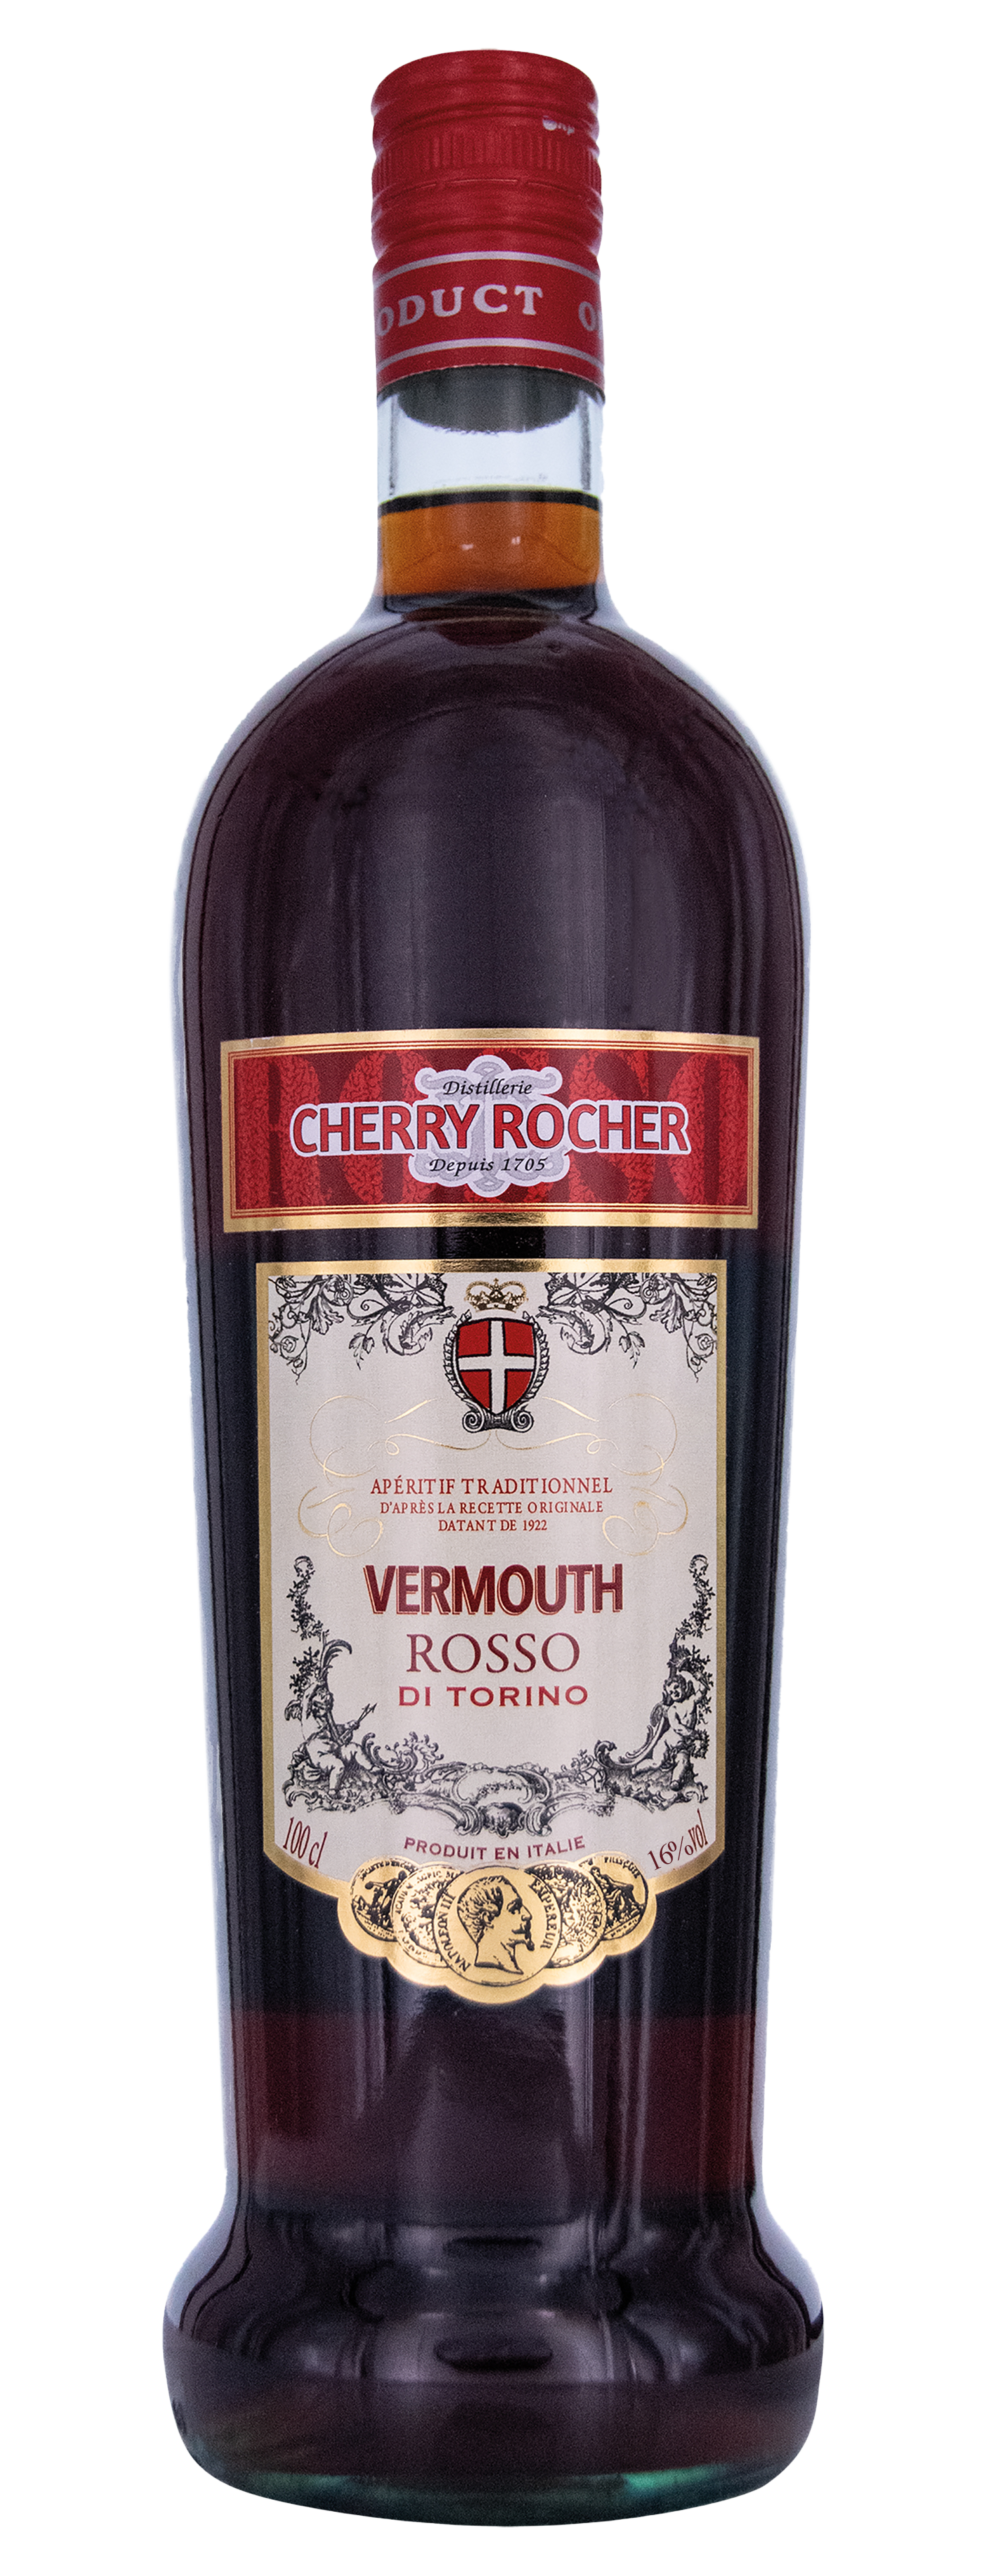 Vermouth Rosso de Turin / Turin Red Vermouth - Cherry Rocher